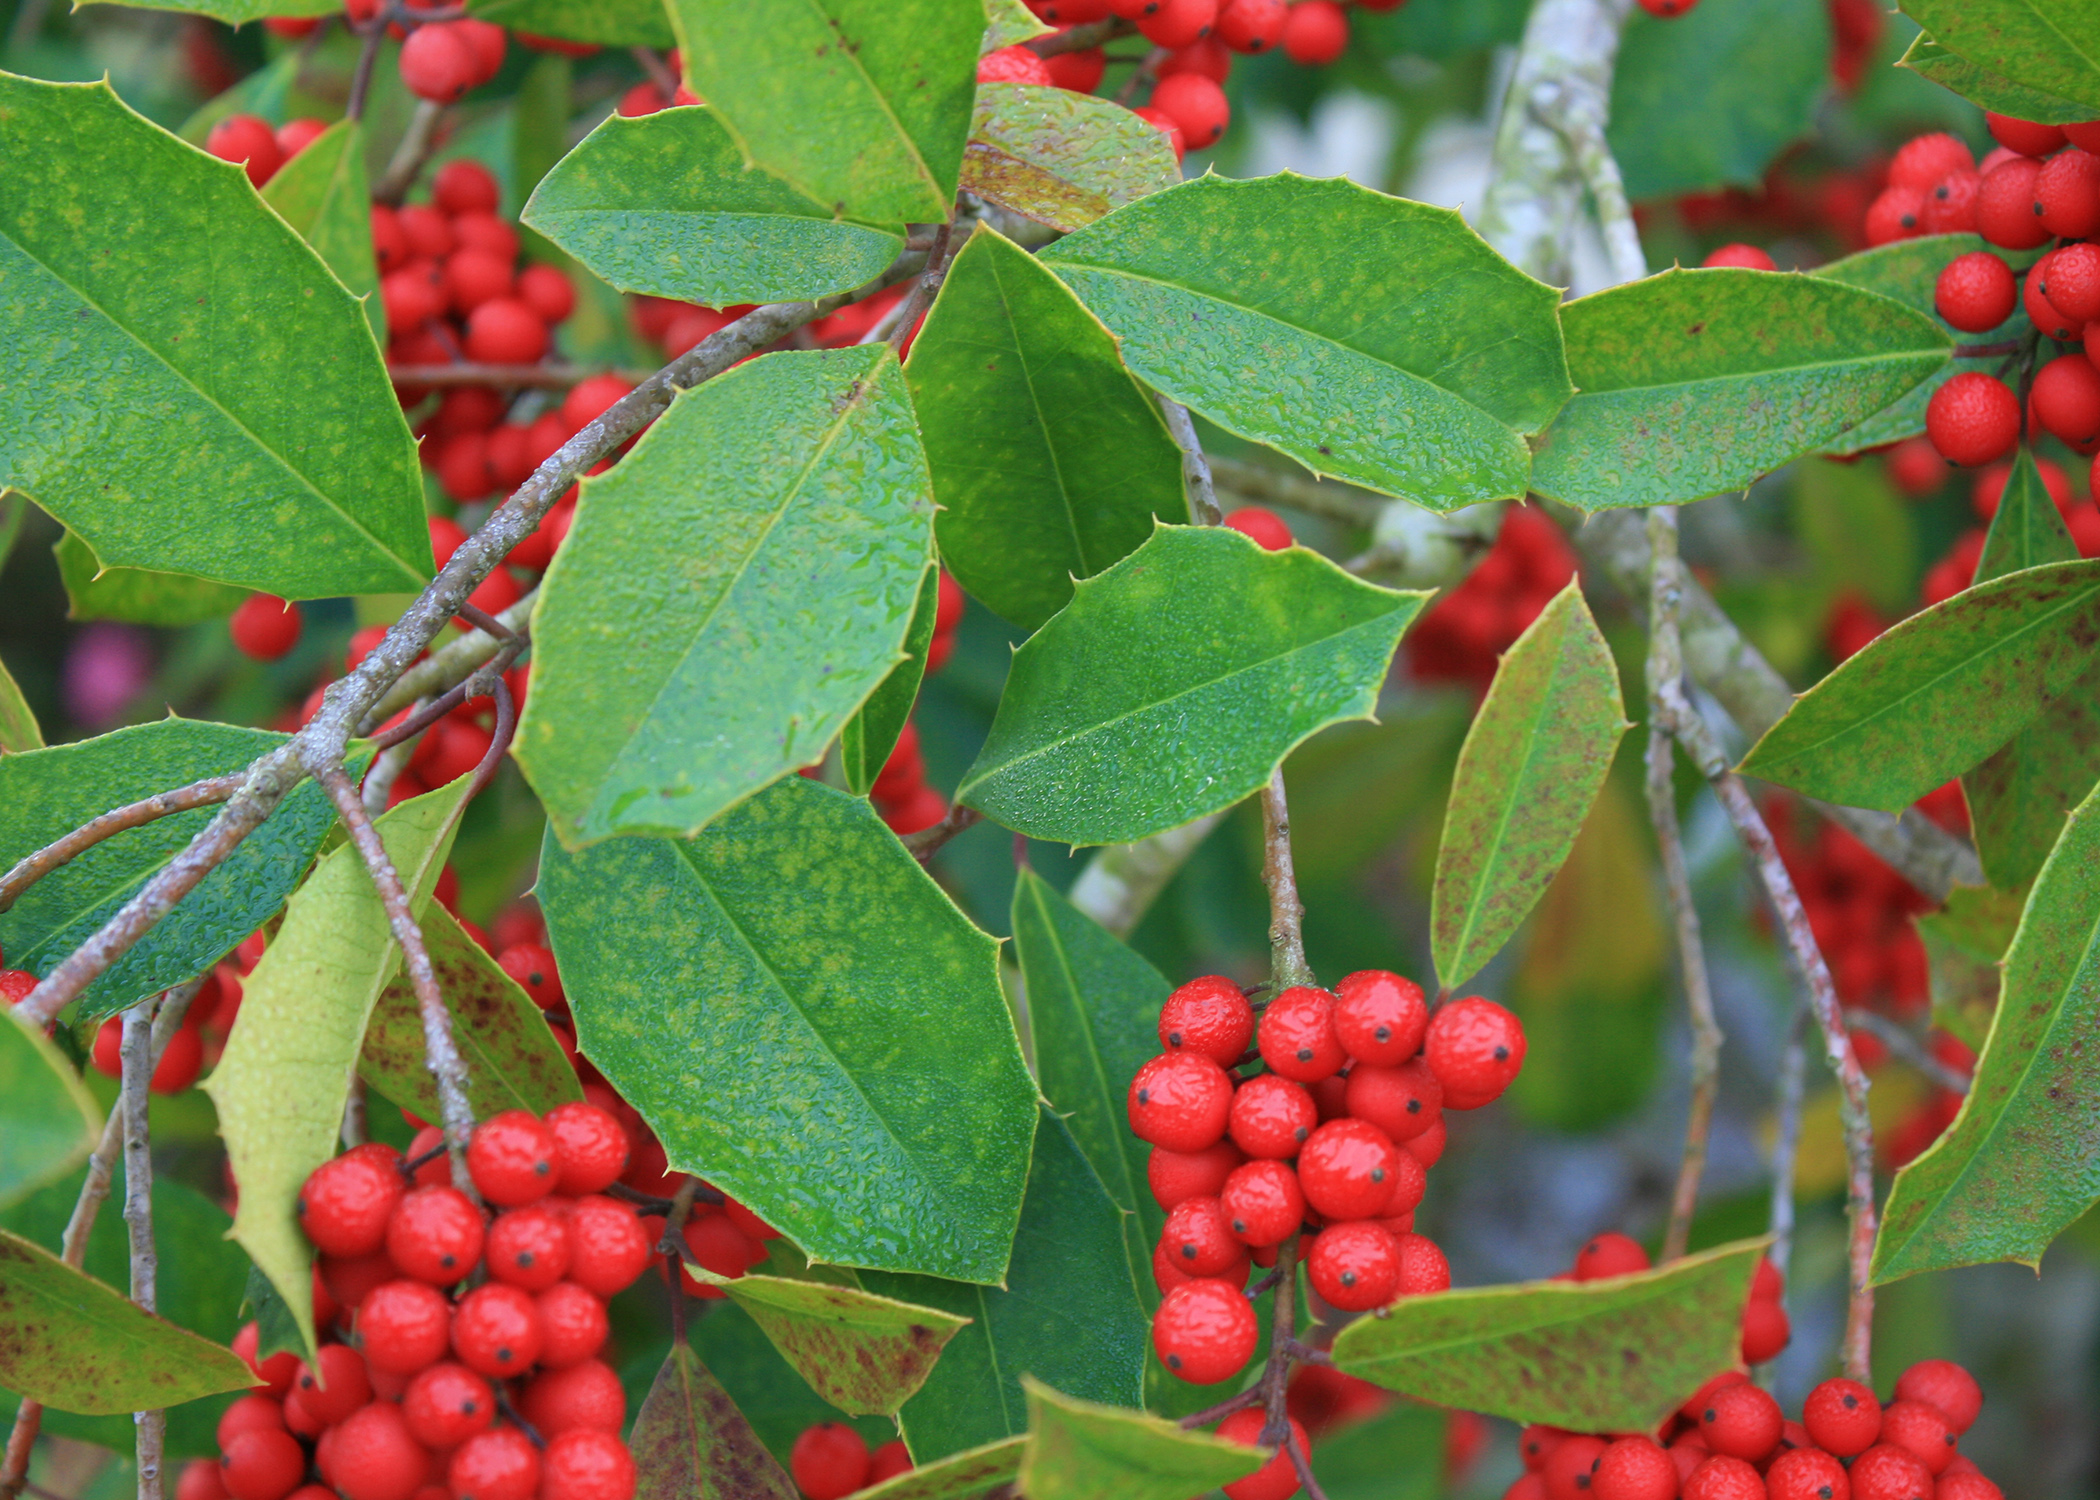 Savannah holly produces outstanding berry color for Holl image